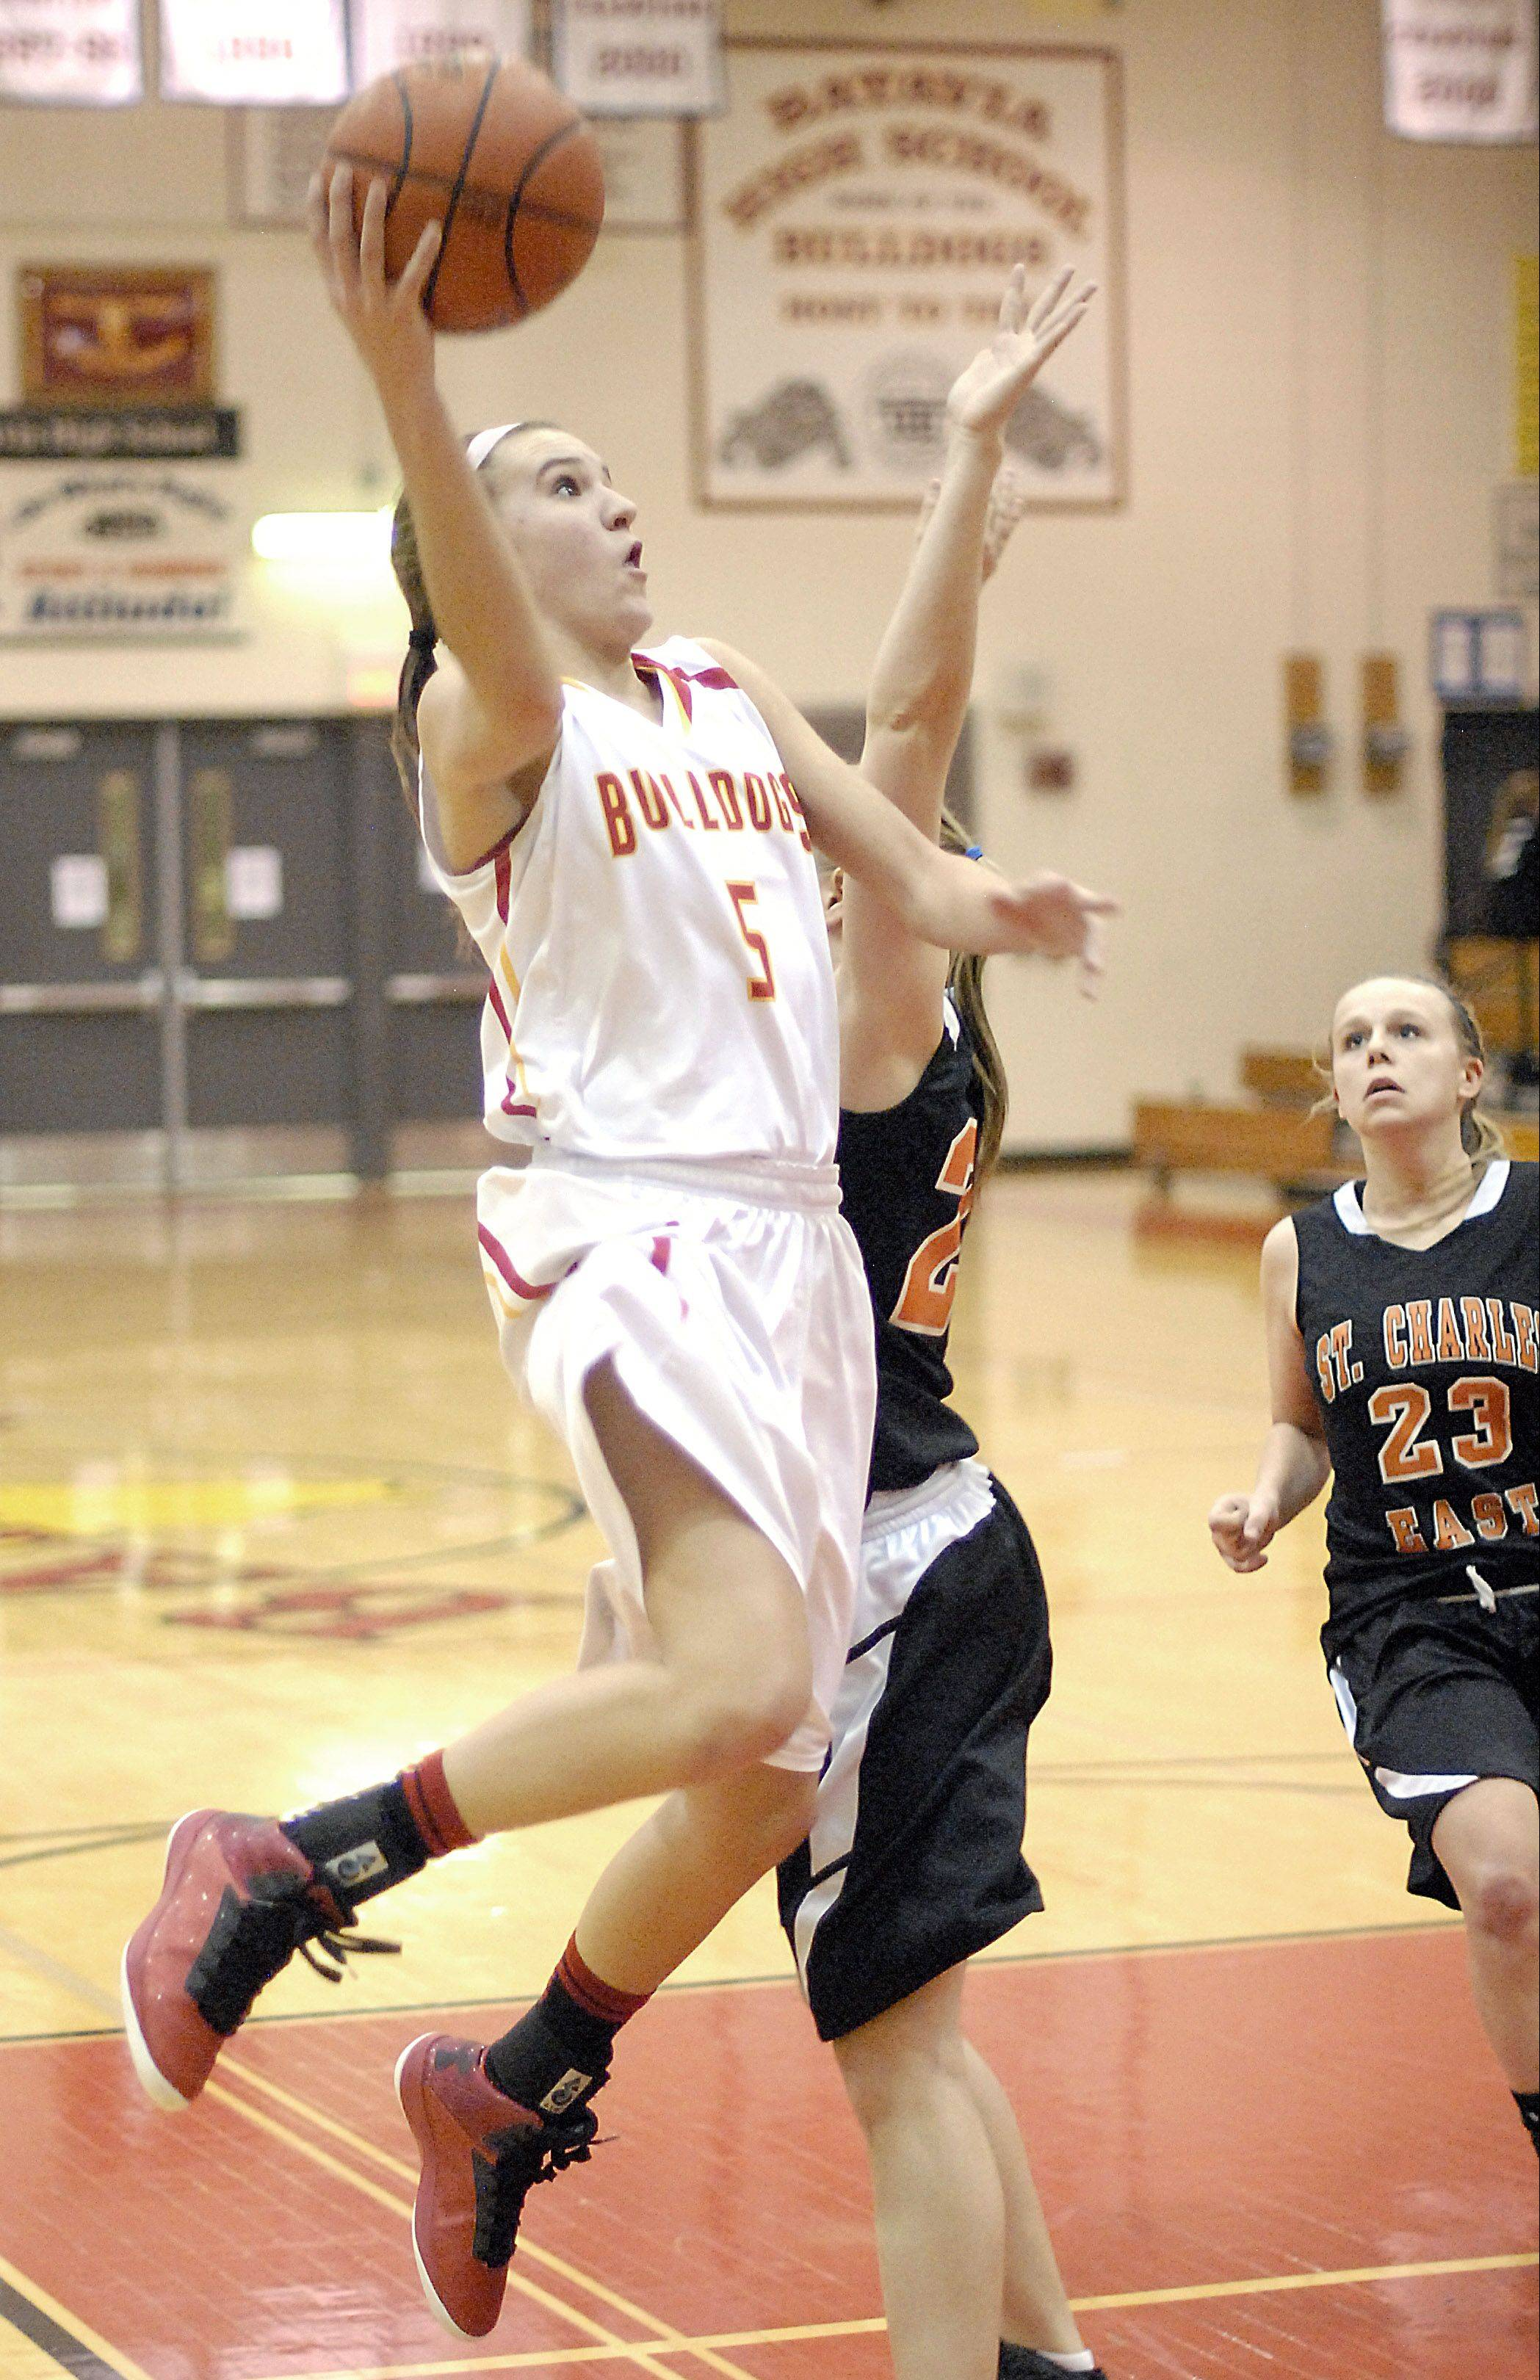 Batavia's Liza Fruendt goes up for 2 of her 28 points in a win over St. Charles East Tuesday in Batavia.